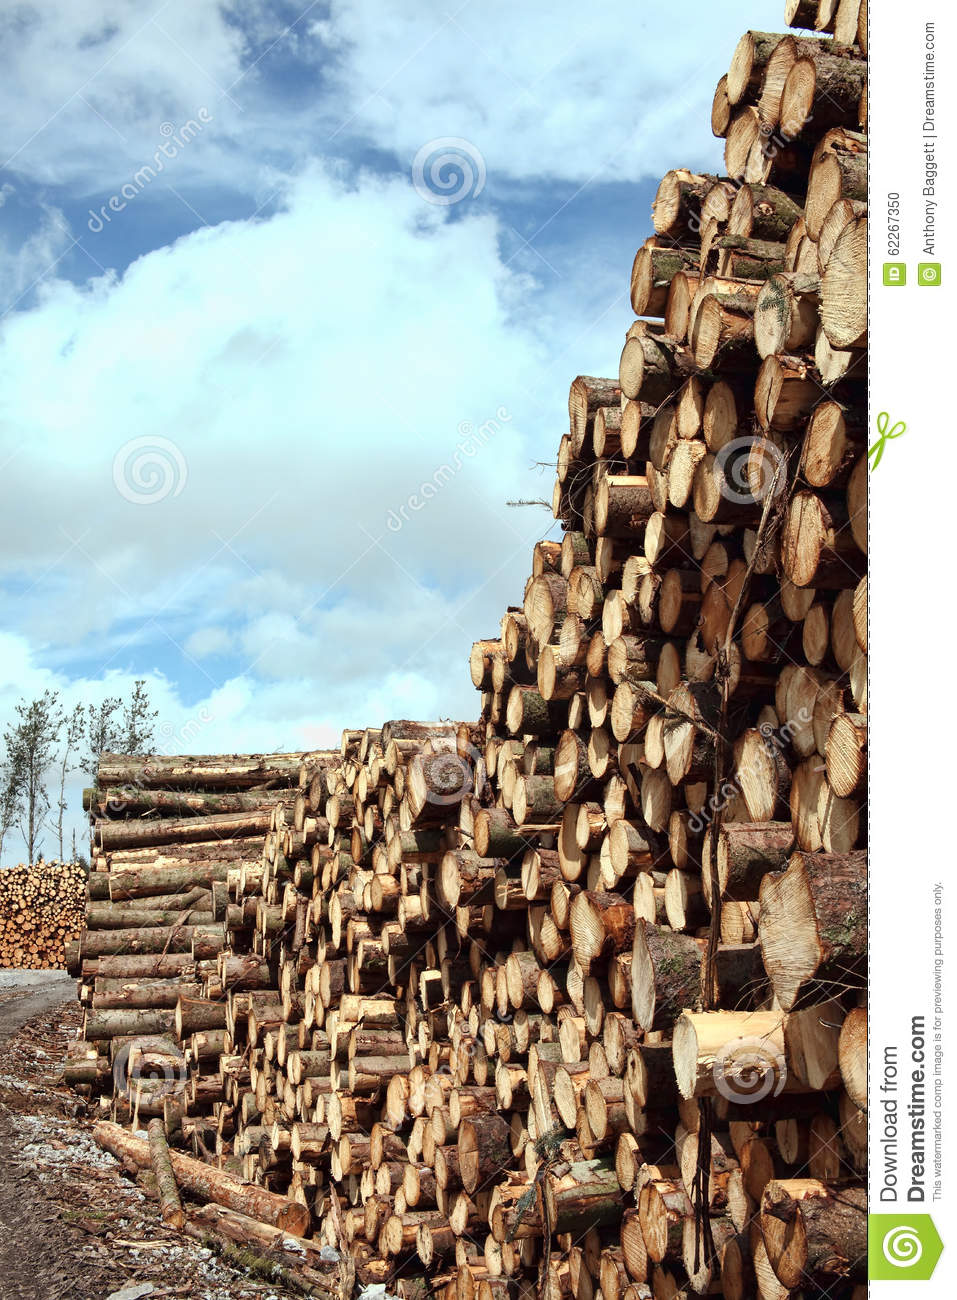 Forest pine trees log trunks stock photo image 62267350 Pine tree timber